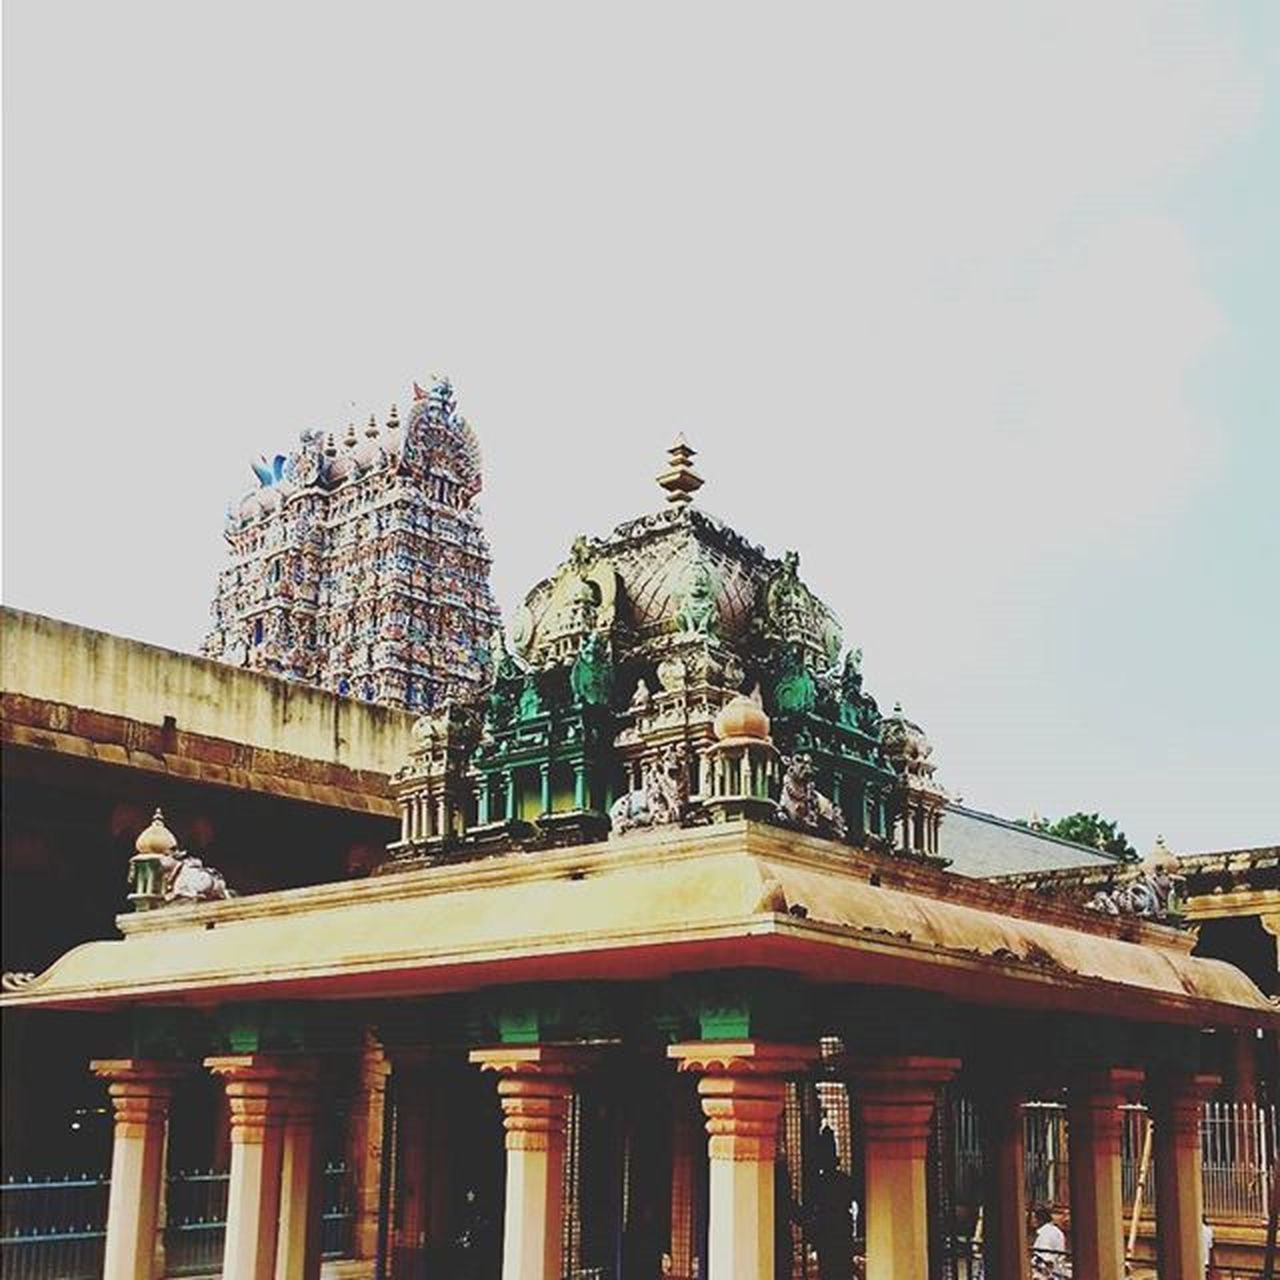 MeenakshiTemple Meenakshiammantemple Madurai Indiantemple India Southindia _soi Instatravel Travel Travel Traveljournal Pixelpanda_india Incredibleindia Picturesofindia Indiapictures Beautifulindia Hippieinhills Indiatravelgram Desi_diaries India Indianarchitecture Temple Temples Indiaclicks